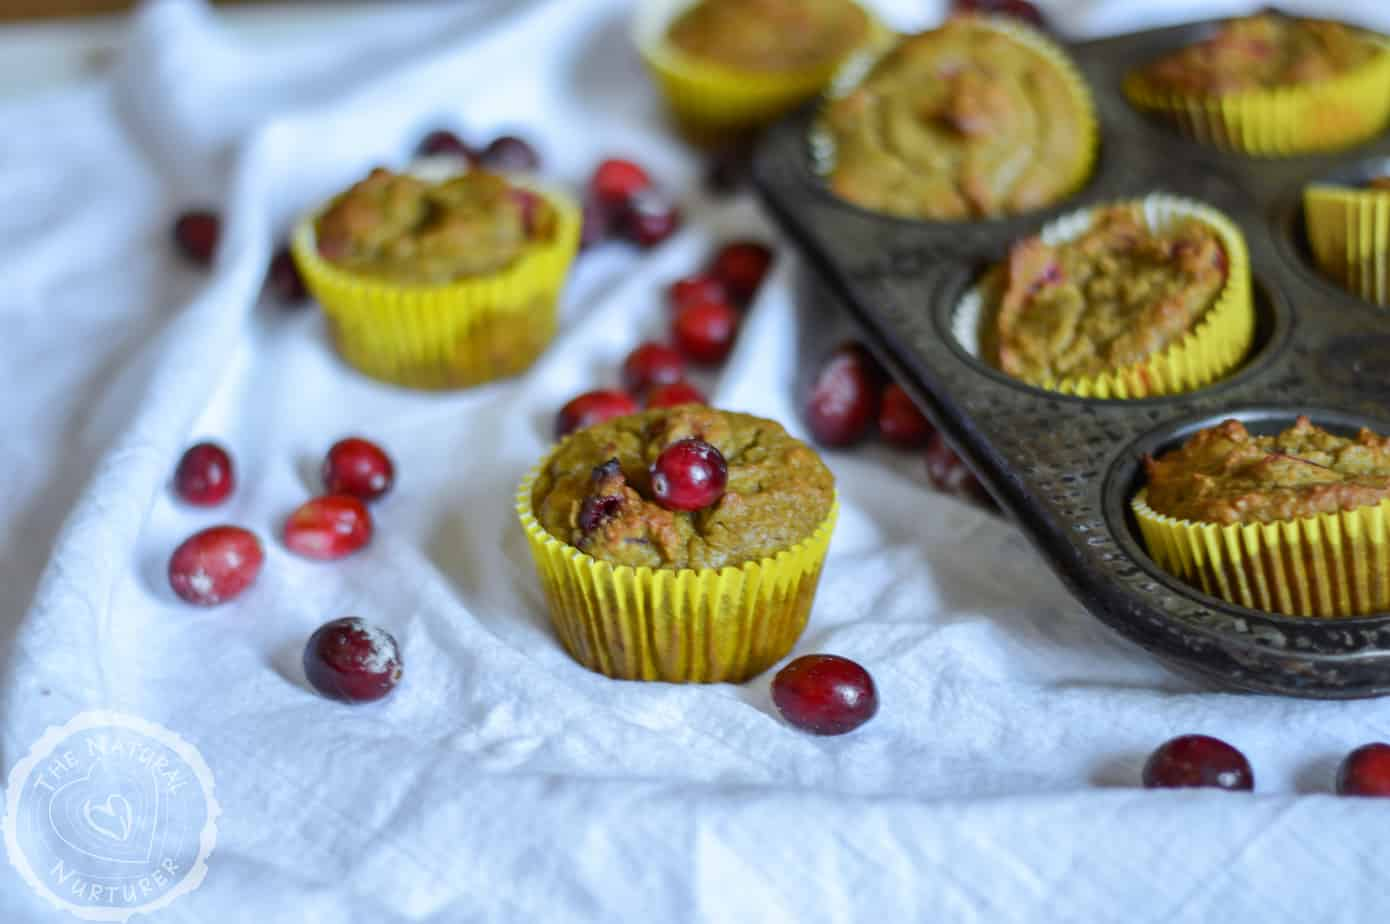 One of the Orange Cranberry Muffins in front of a stack of more muffins in the background.